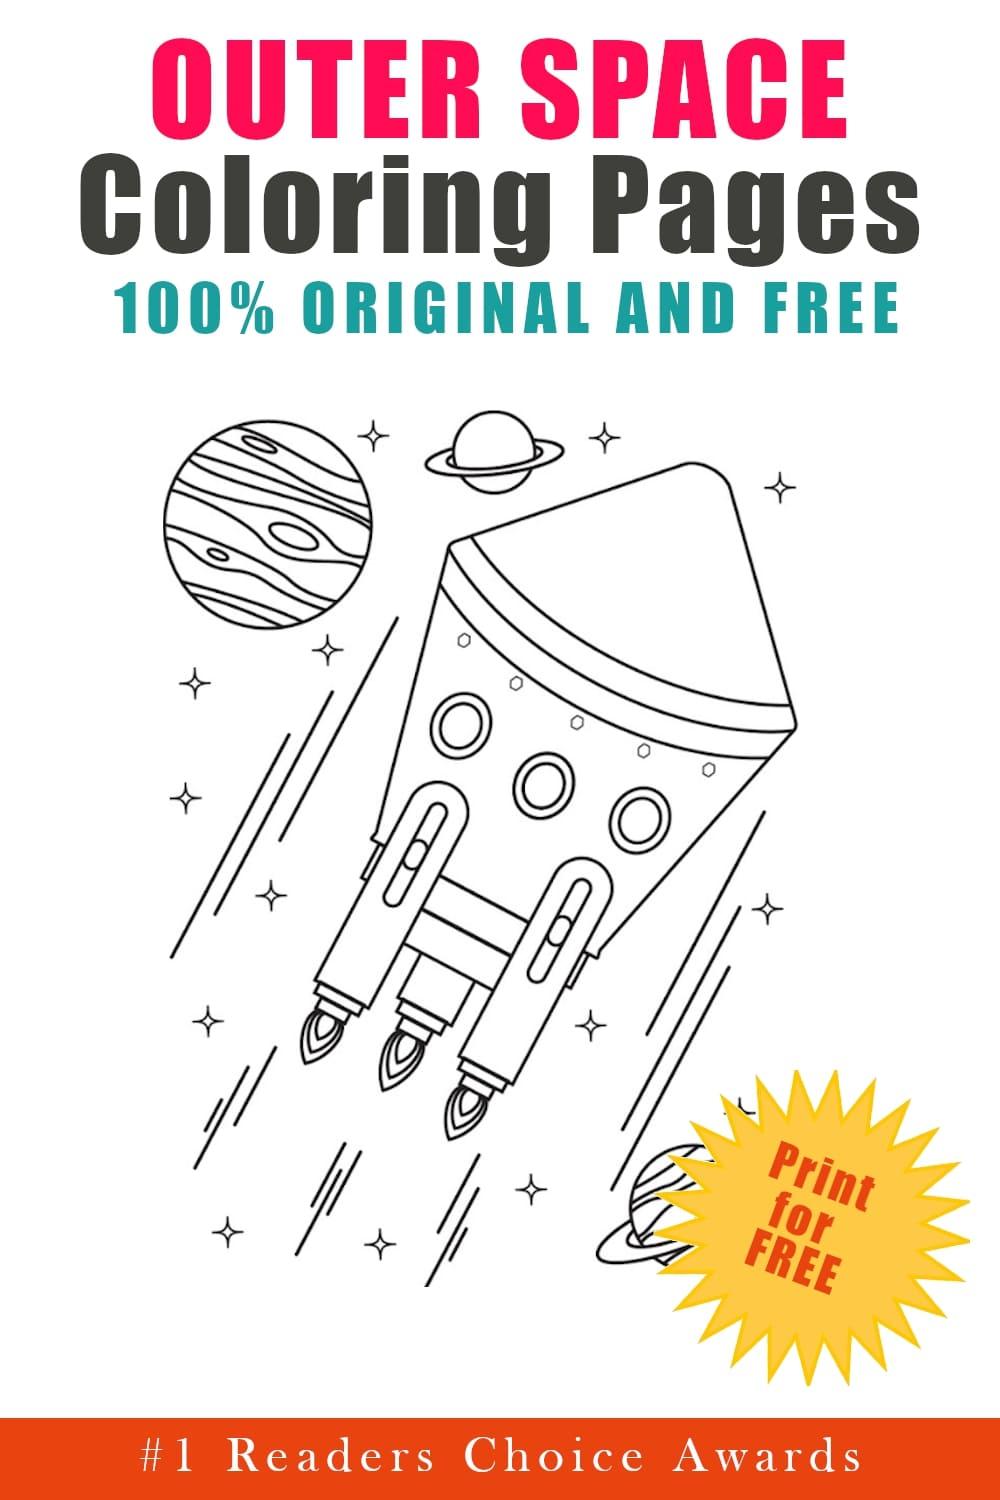 original and free outer space coloring pages